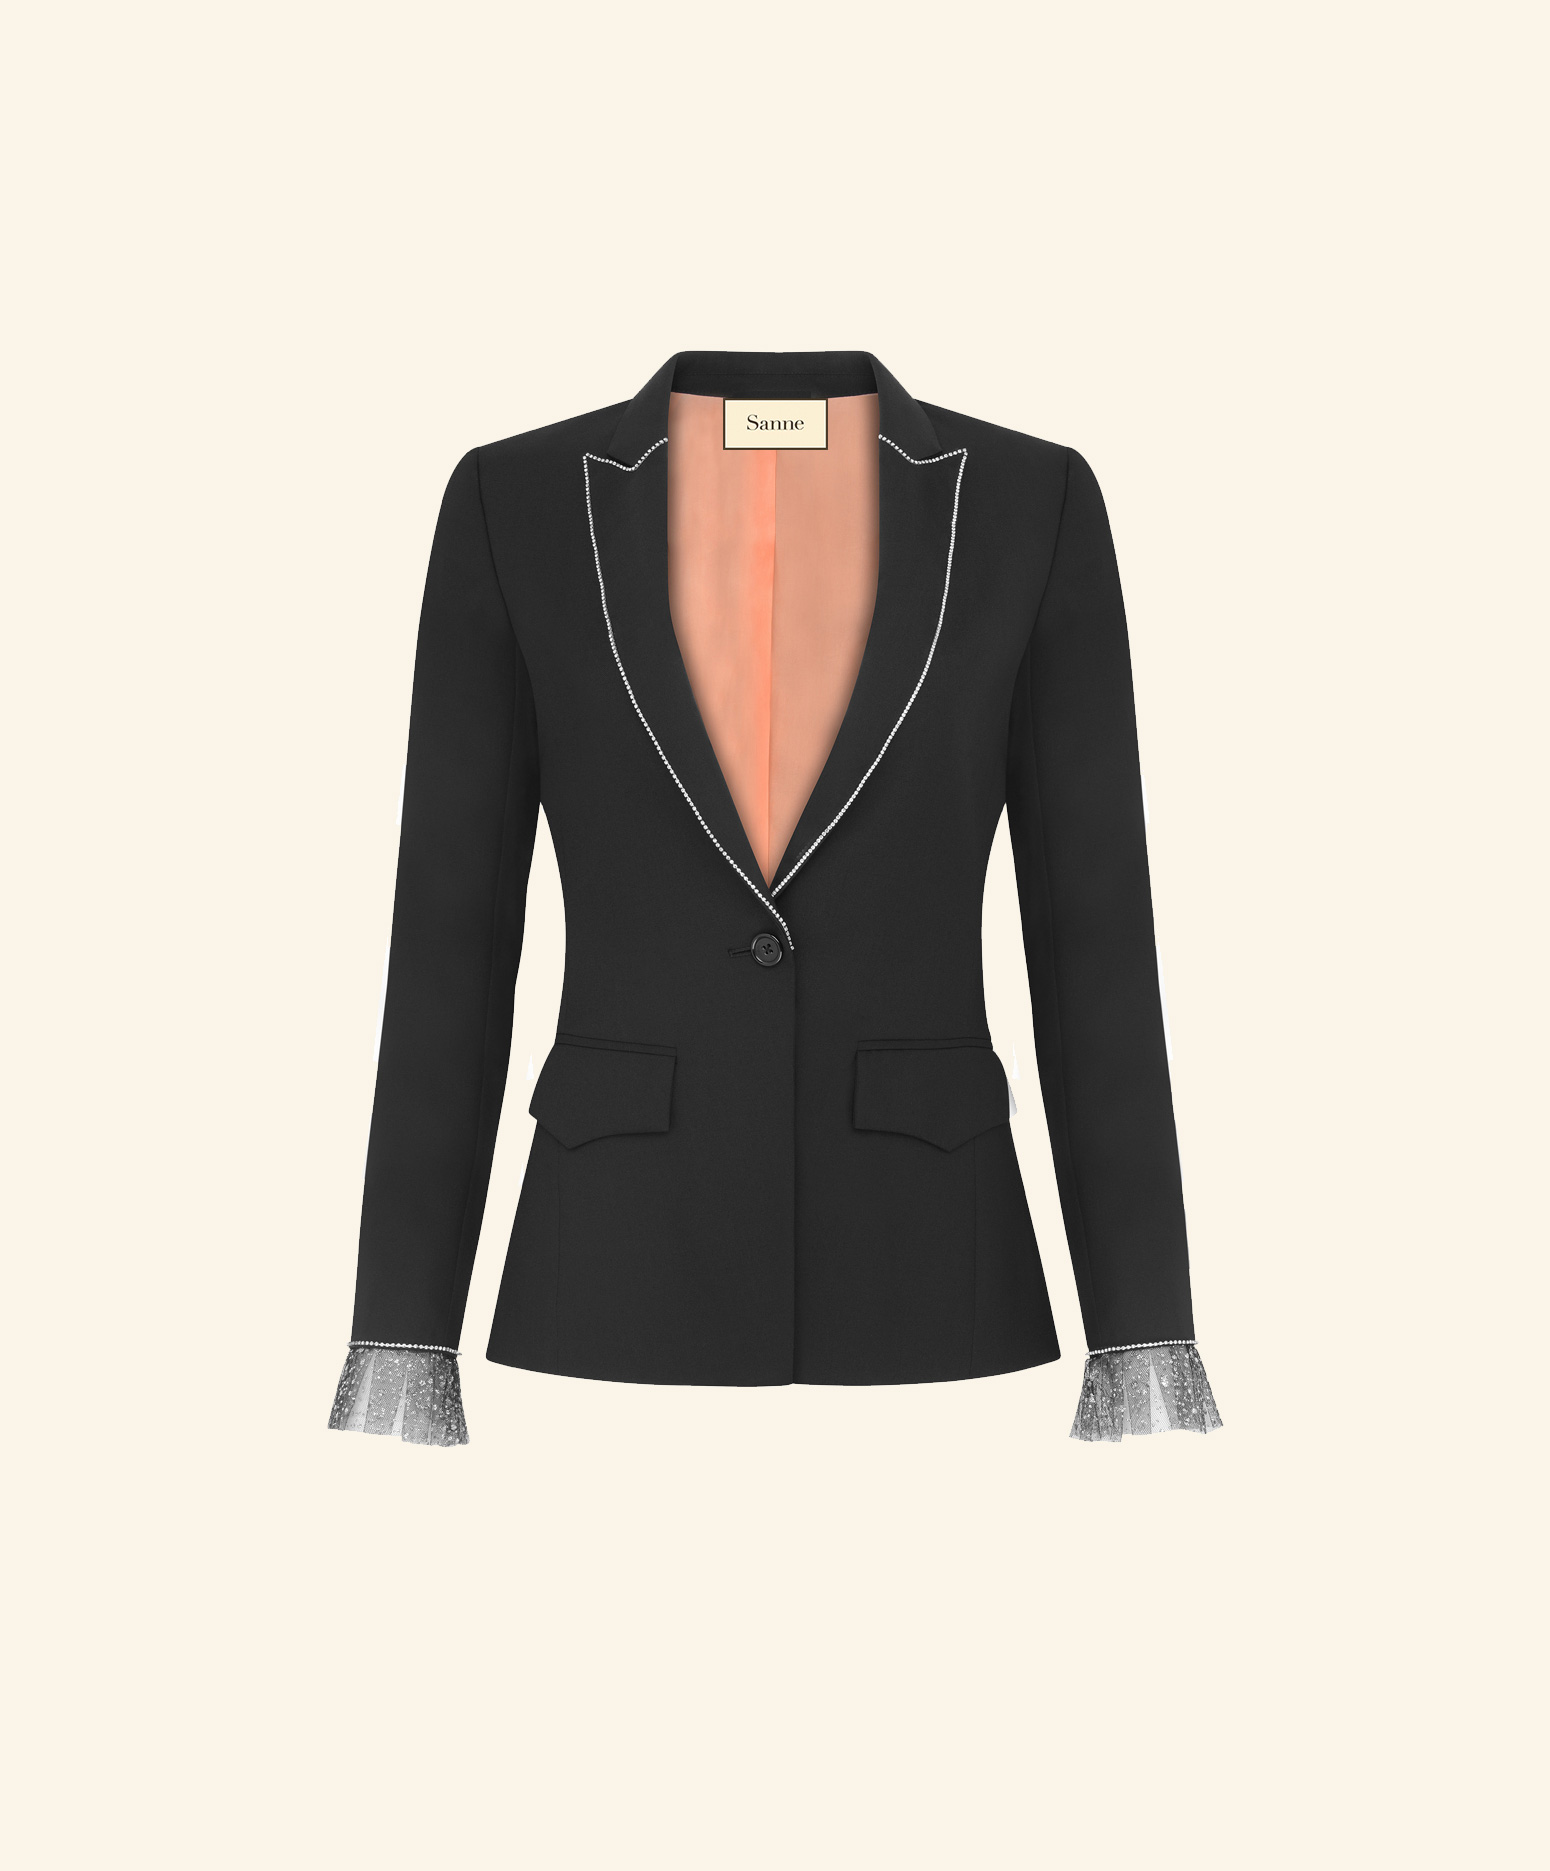 blazer-netted-cuffs